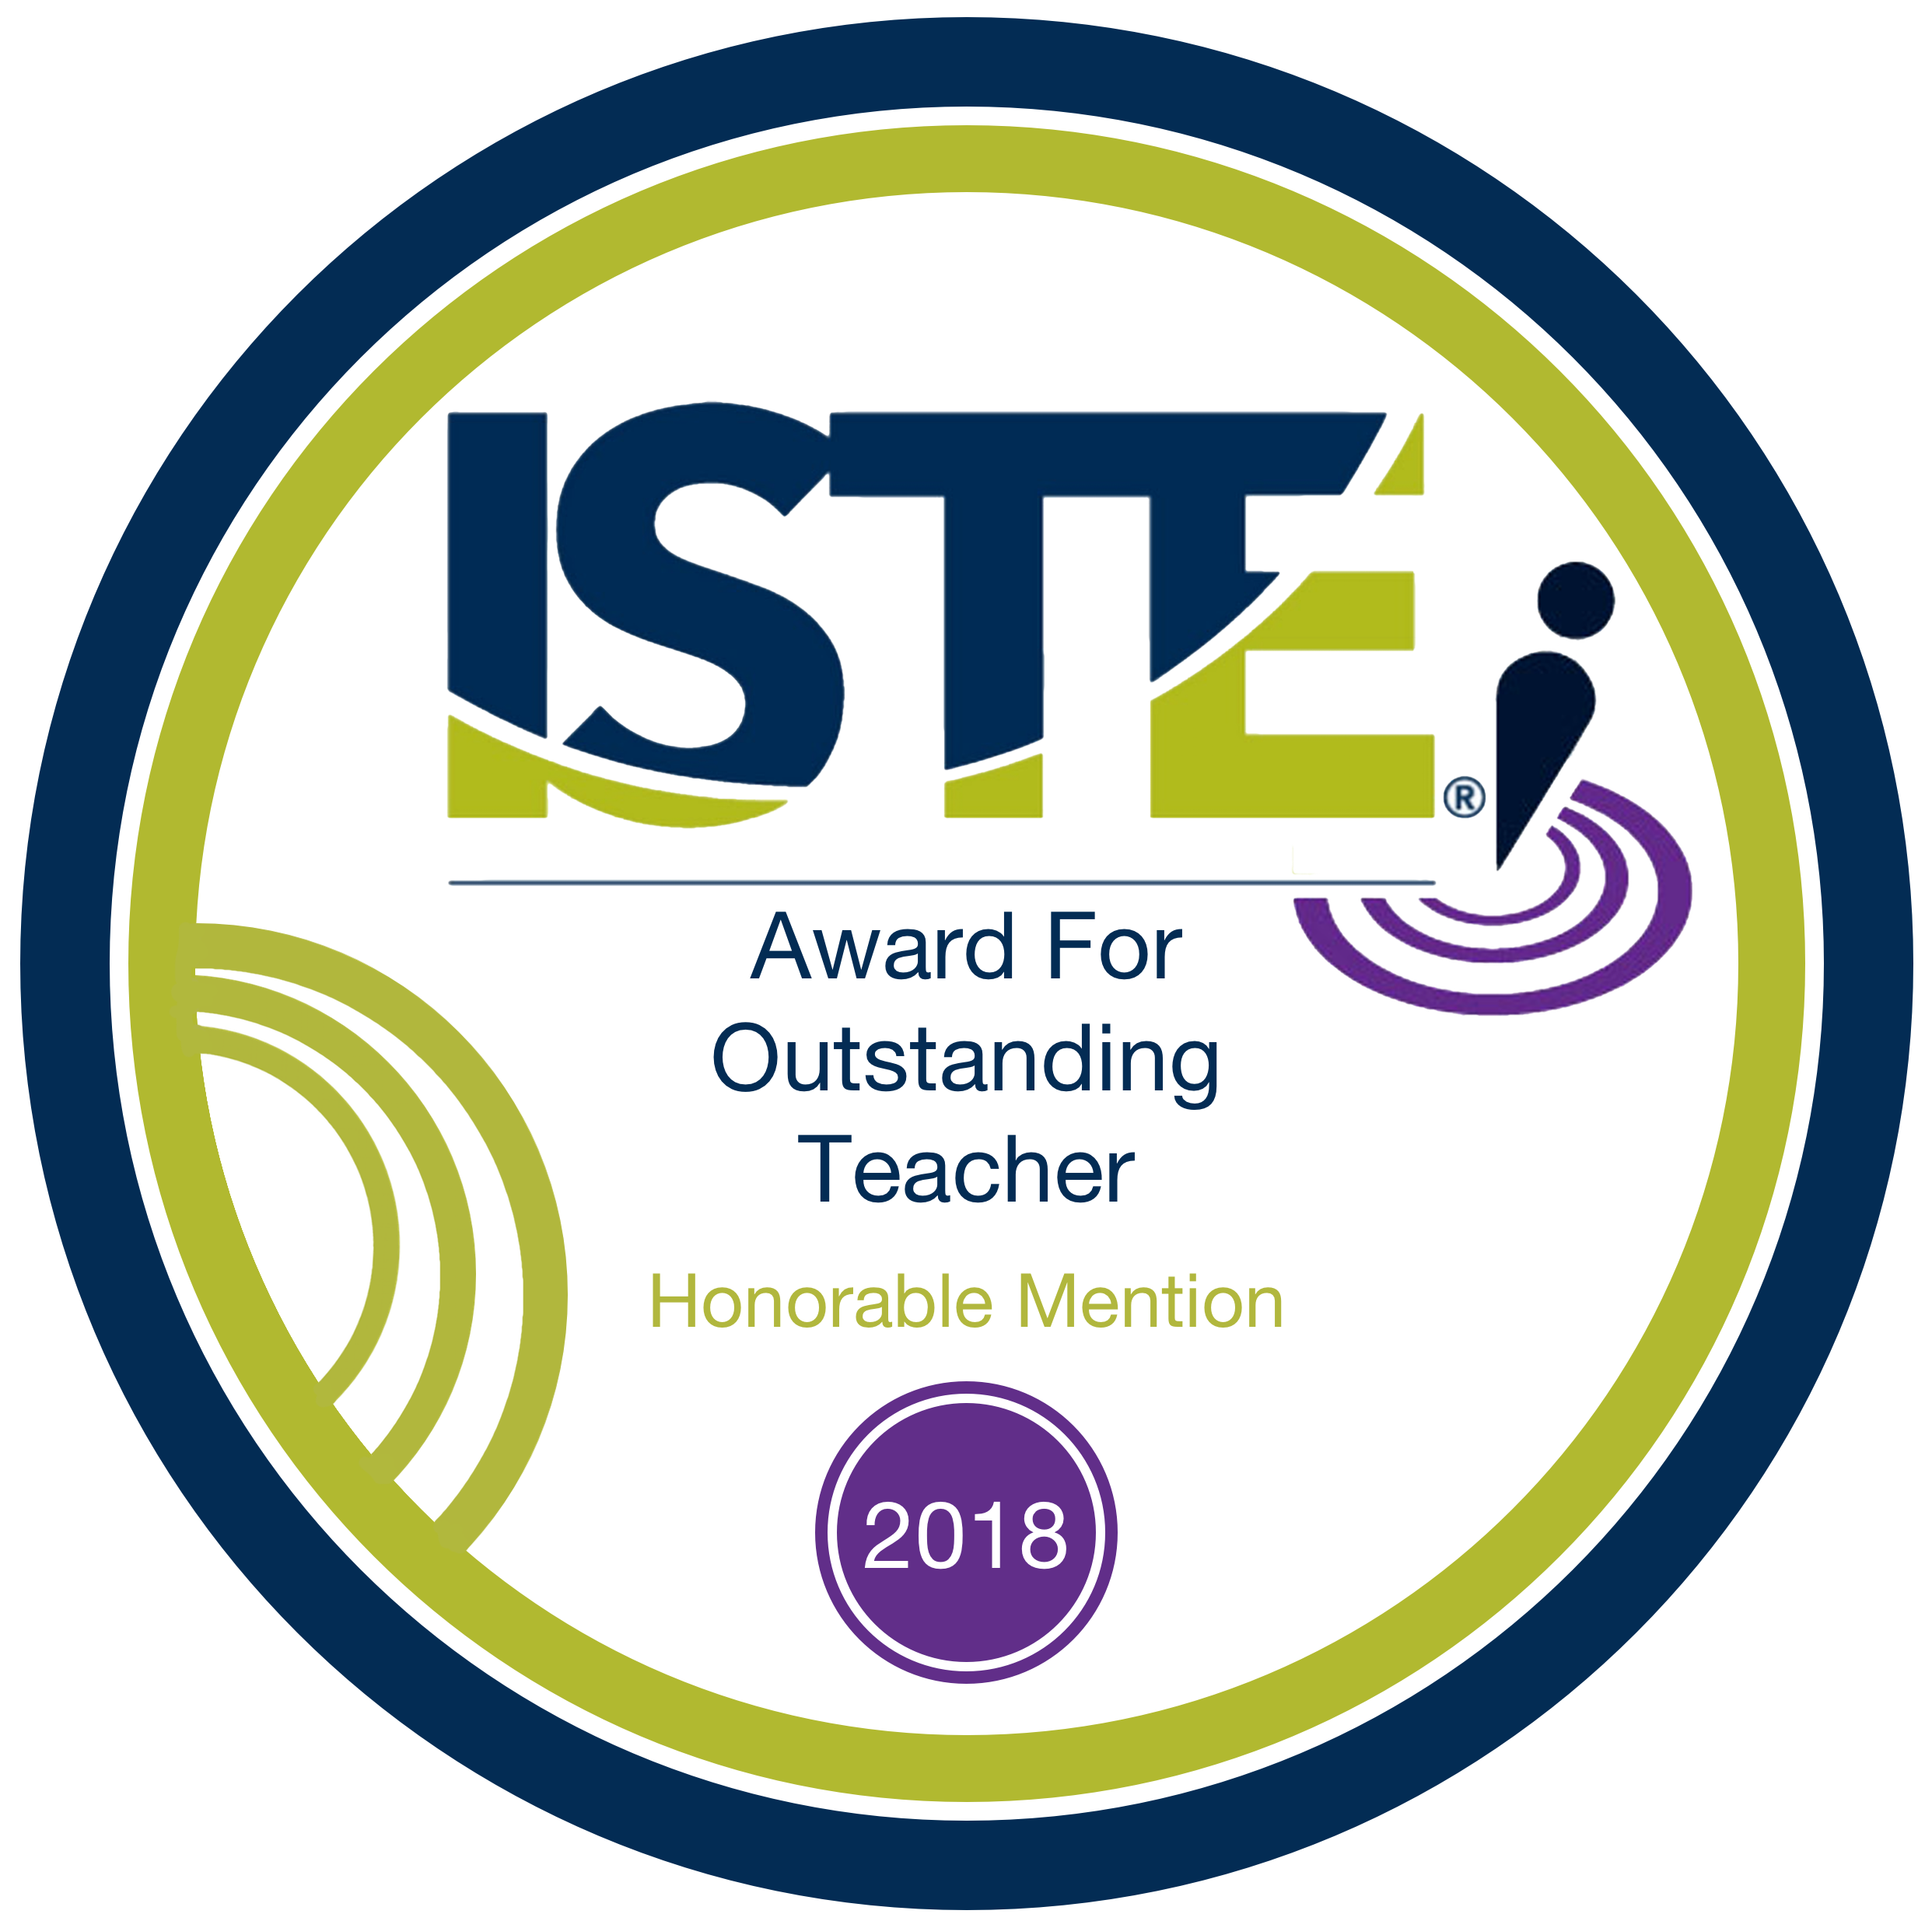 ISTE Award for Outstanding Teacher 2018